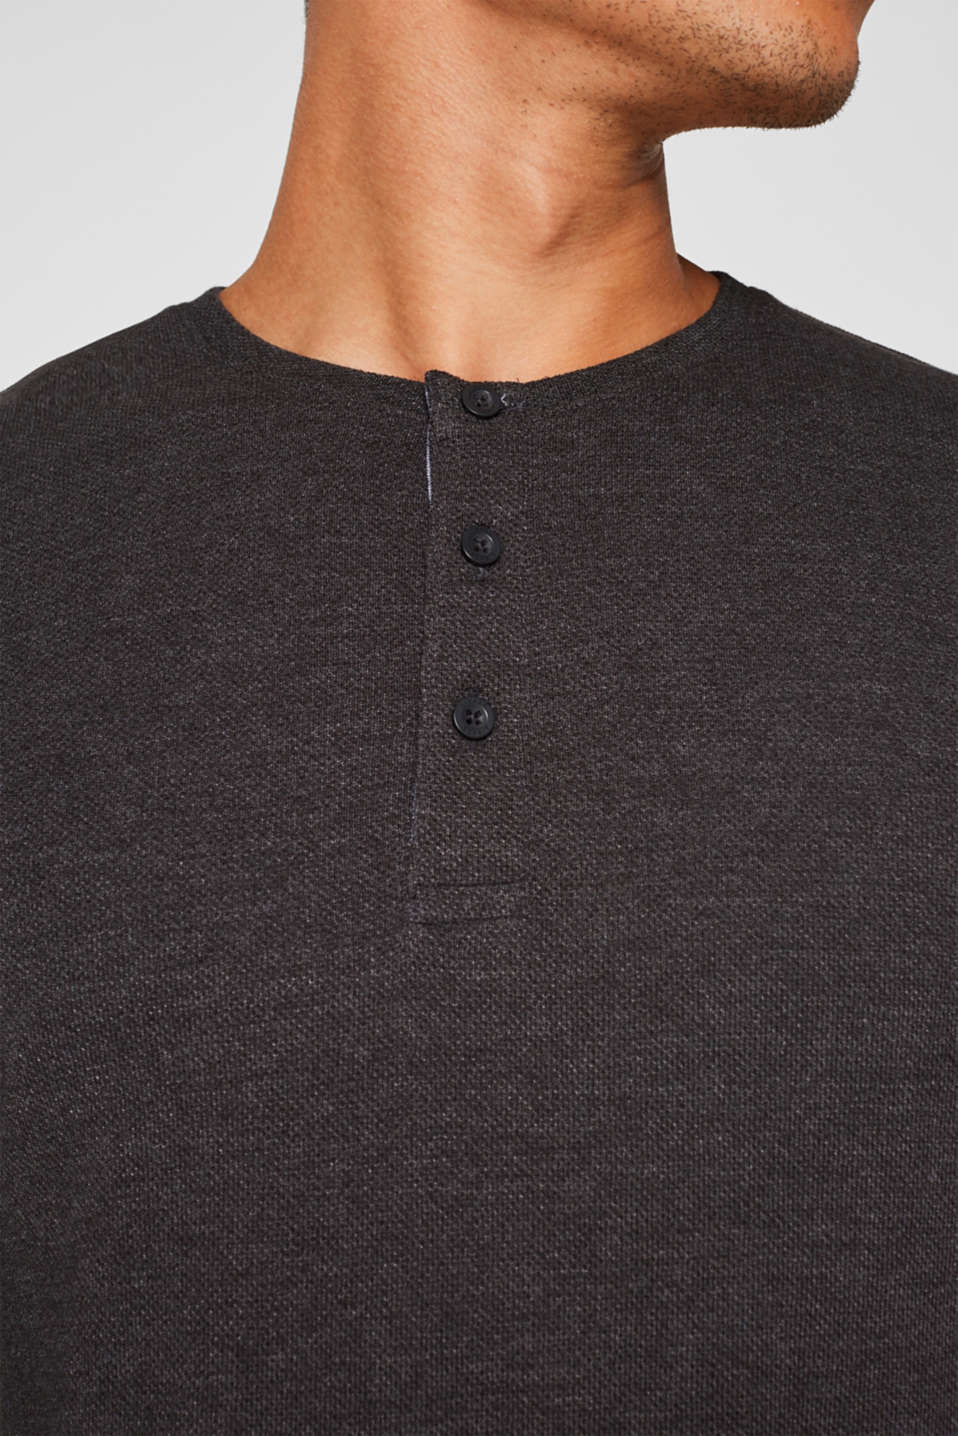 Jersey long sleeve top with a waffle pattern, DARK GREY, detail image number 6